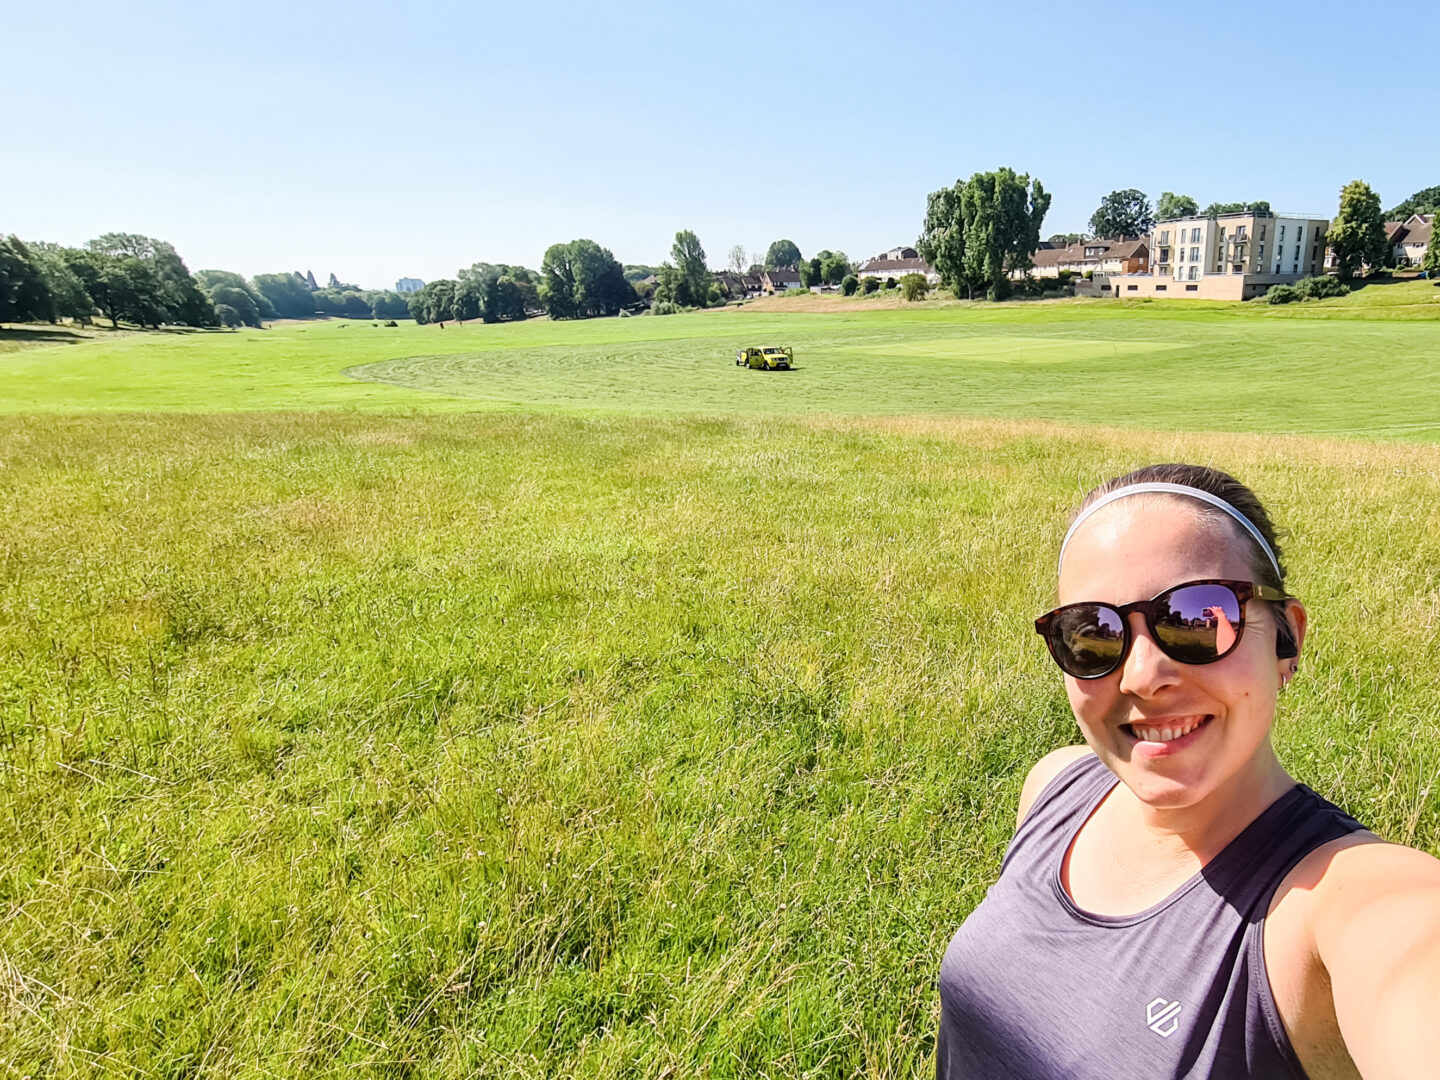 Selfie of woman in grey running vest and sunglasses, with green field behind her